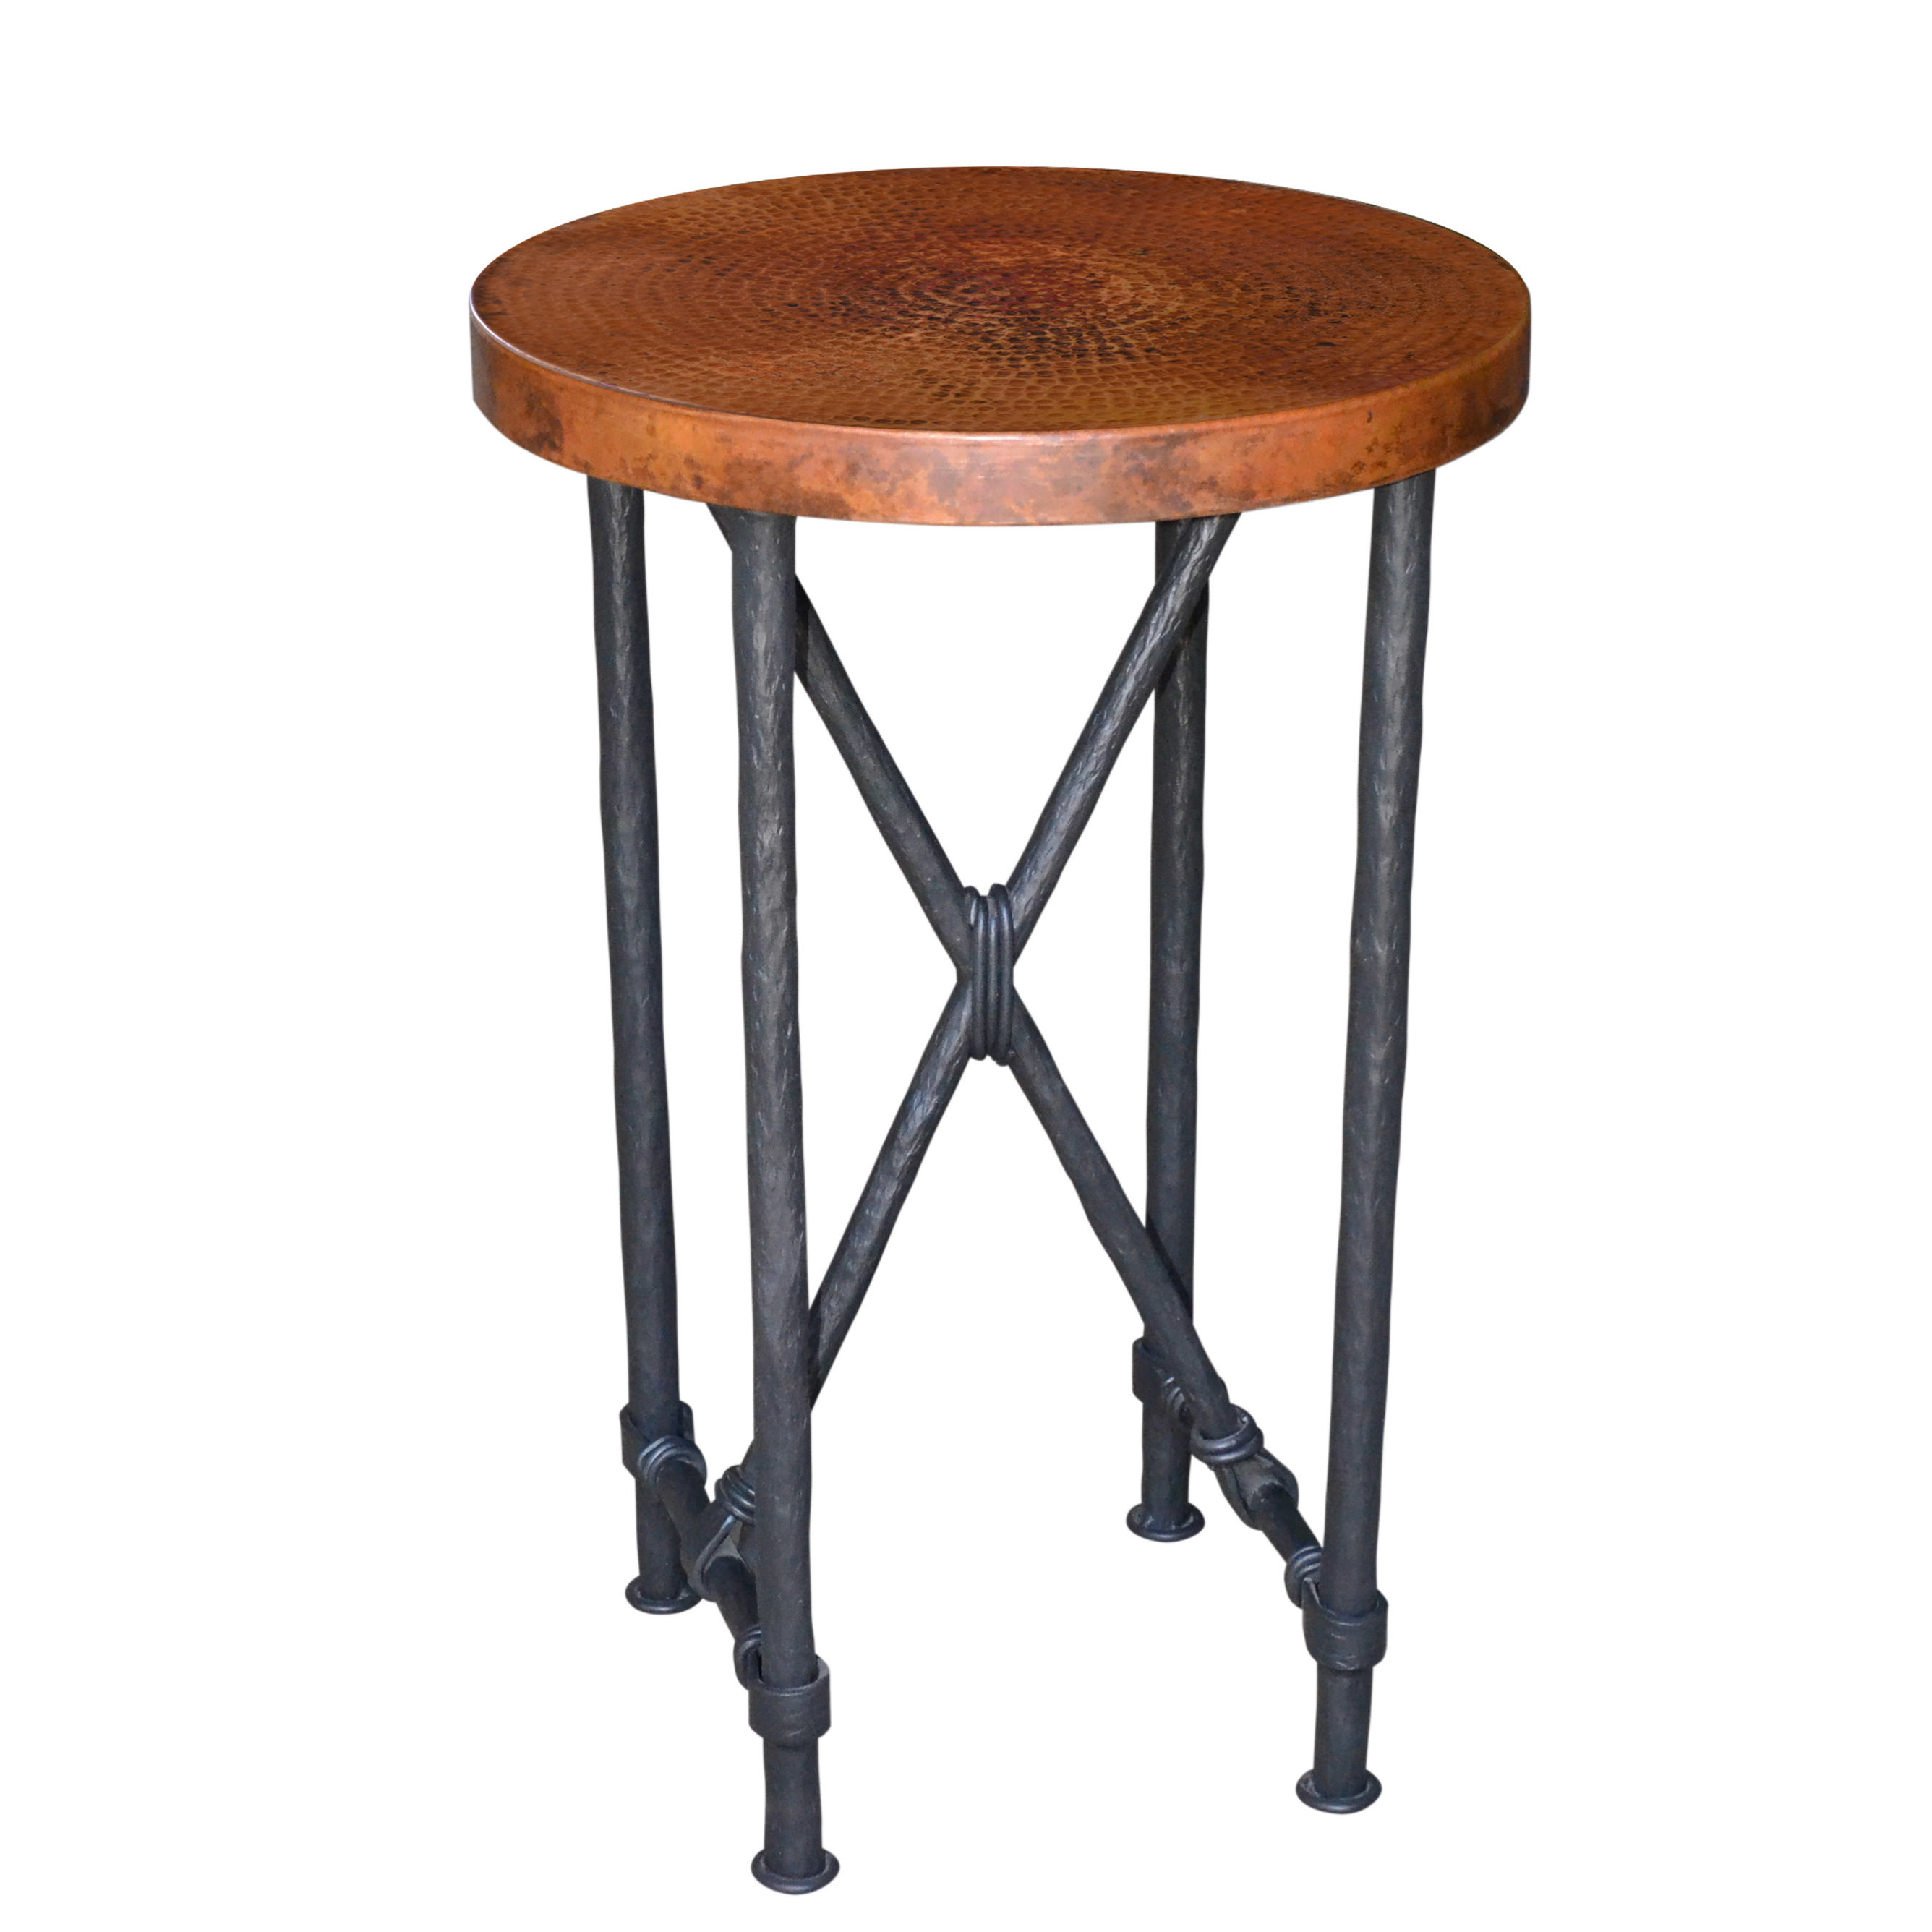 bloomsbury market del accent telephone table pottery barn bar metal dining room legs target small square door threshold trim large outside umbrellas wood storage cabinets modern